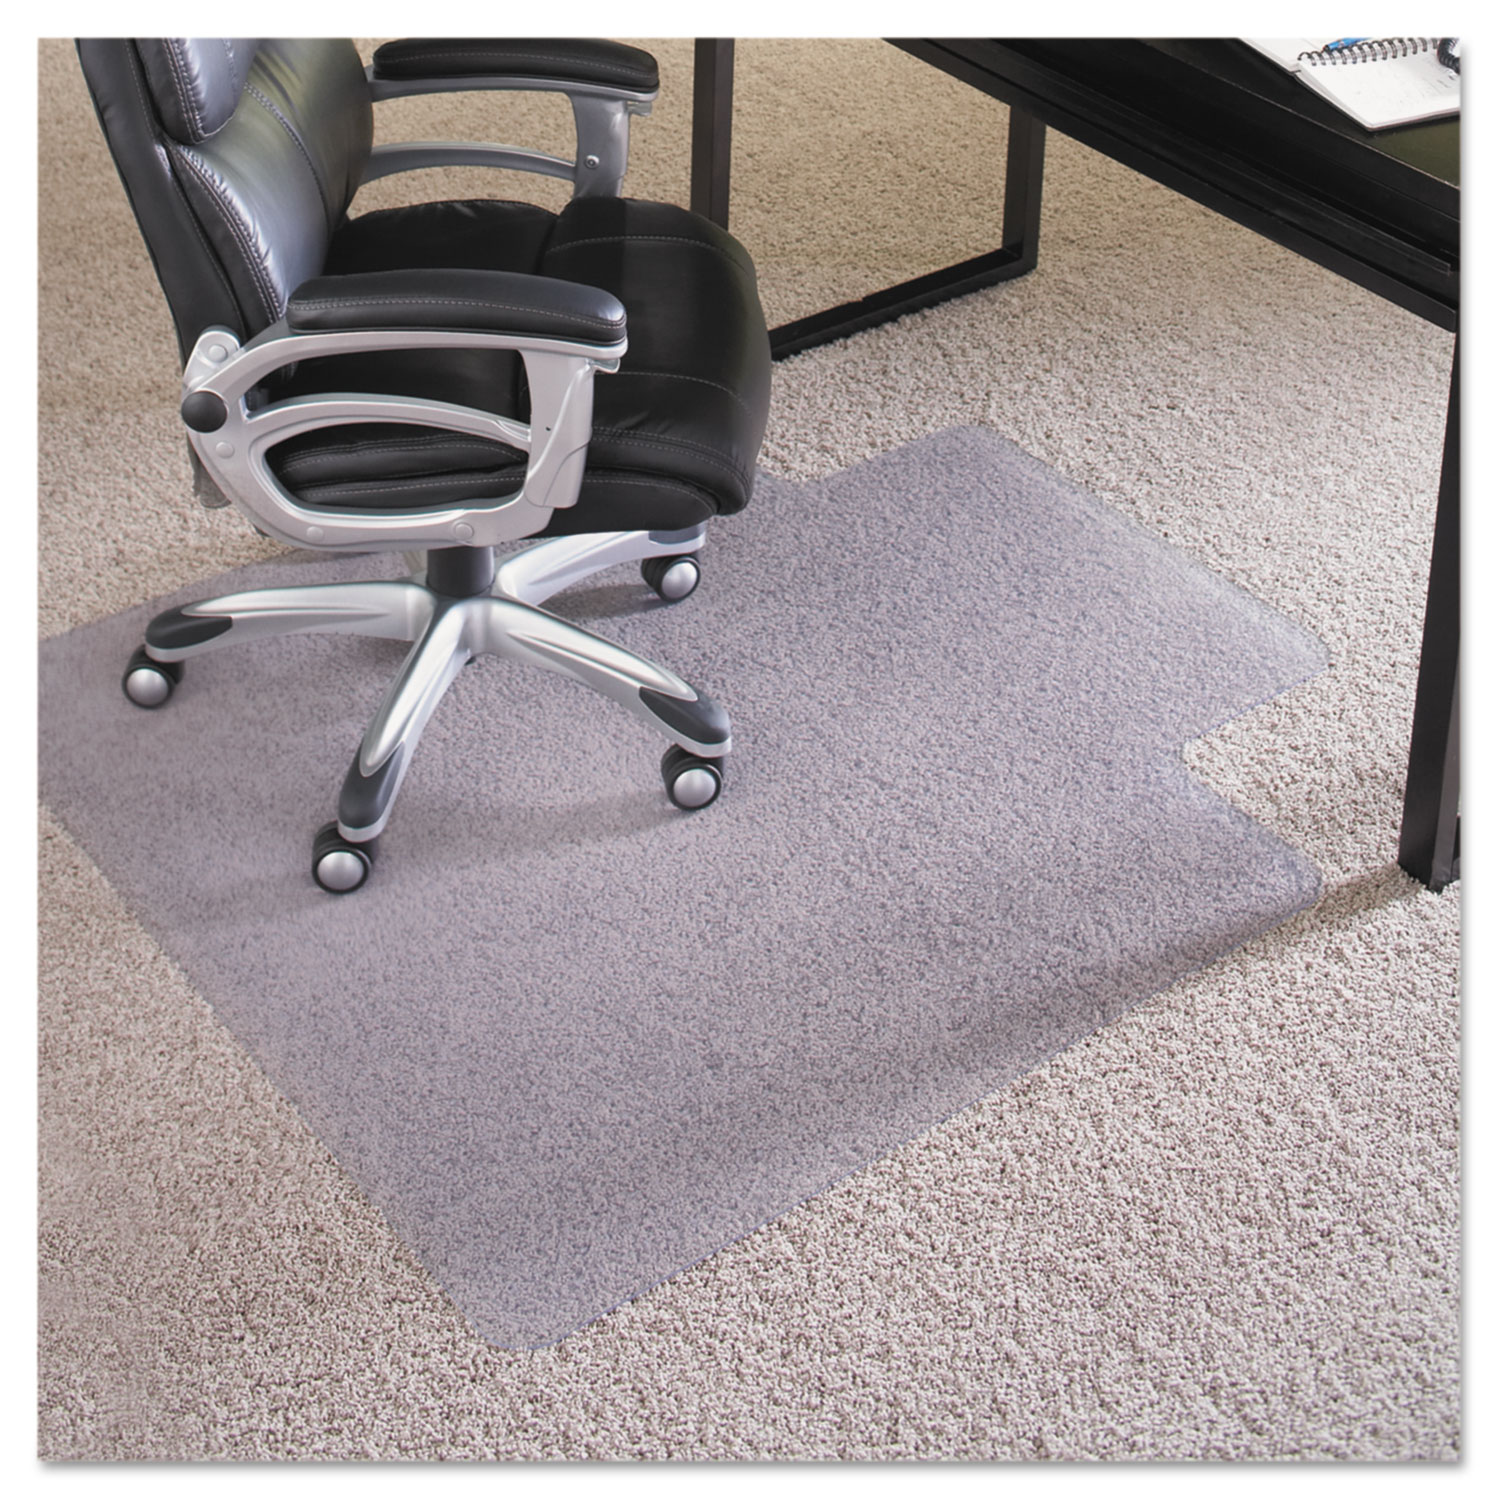 office chair mat 45 x 53 rent tablecloths and covers for wedding 45x53 lip by es robbins esr124154